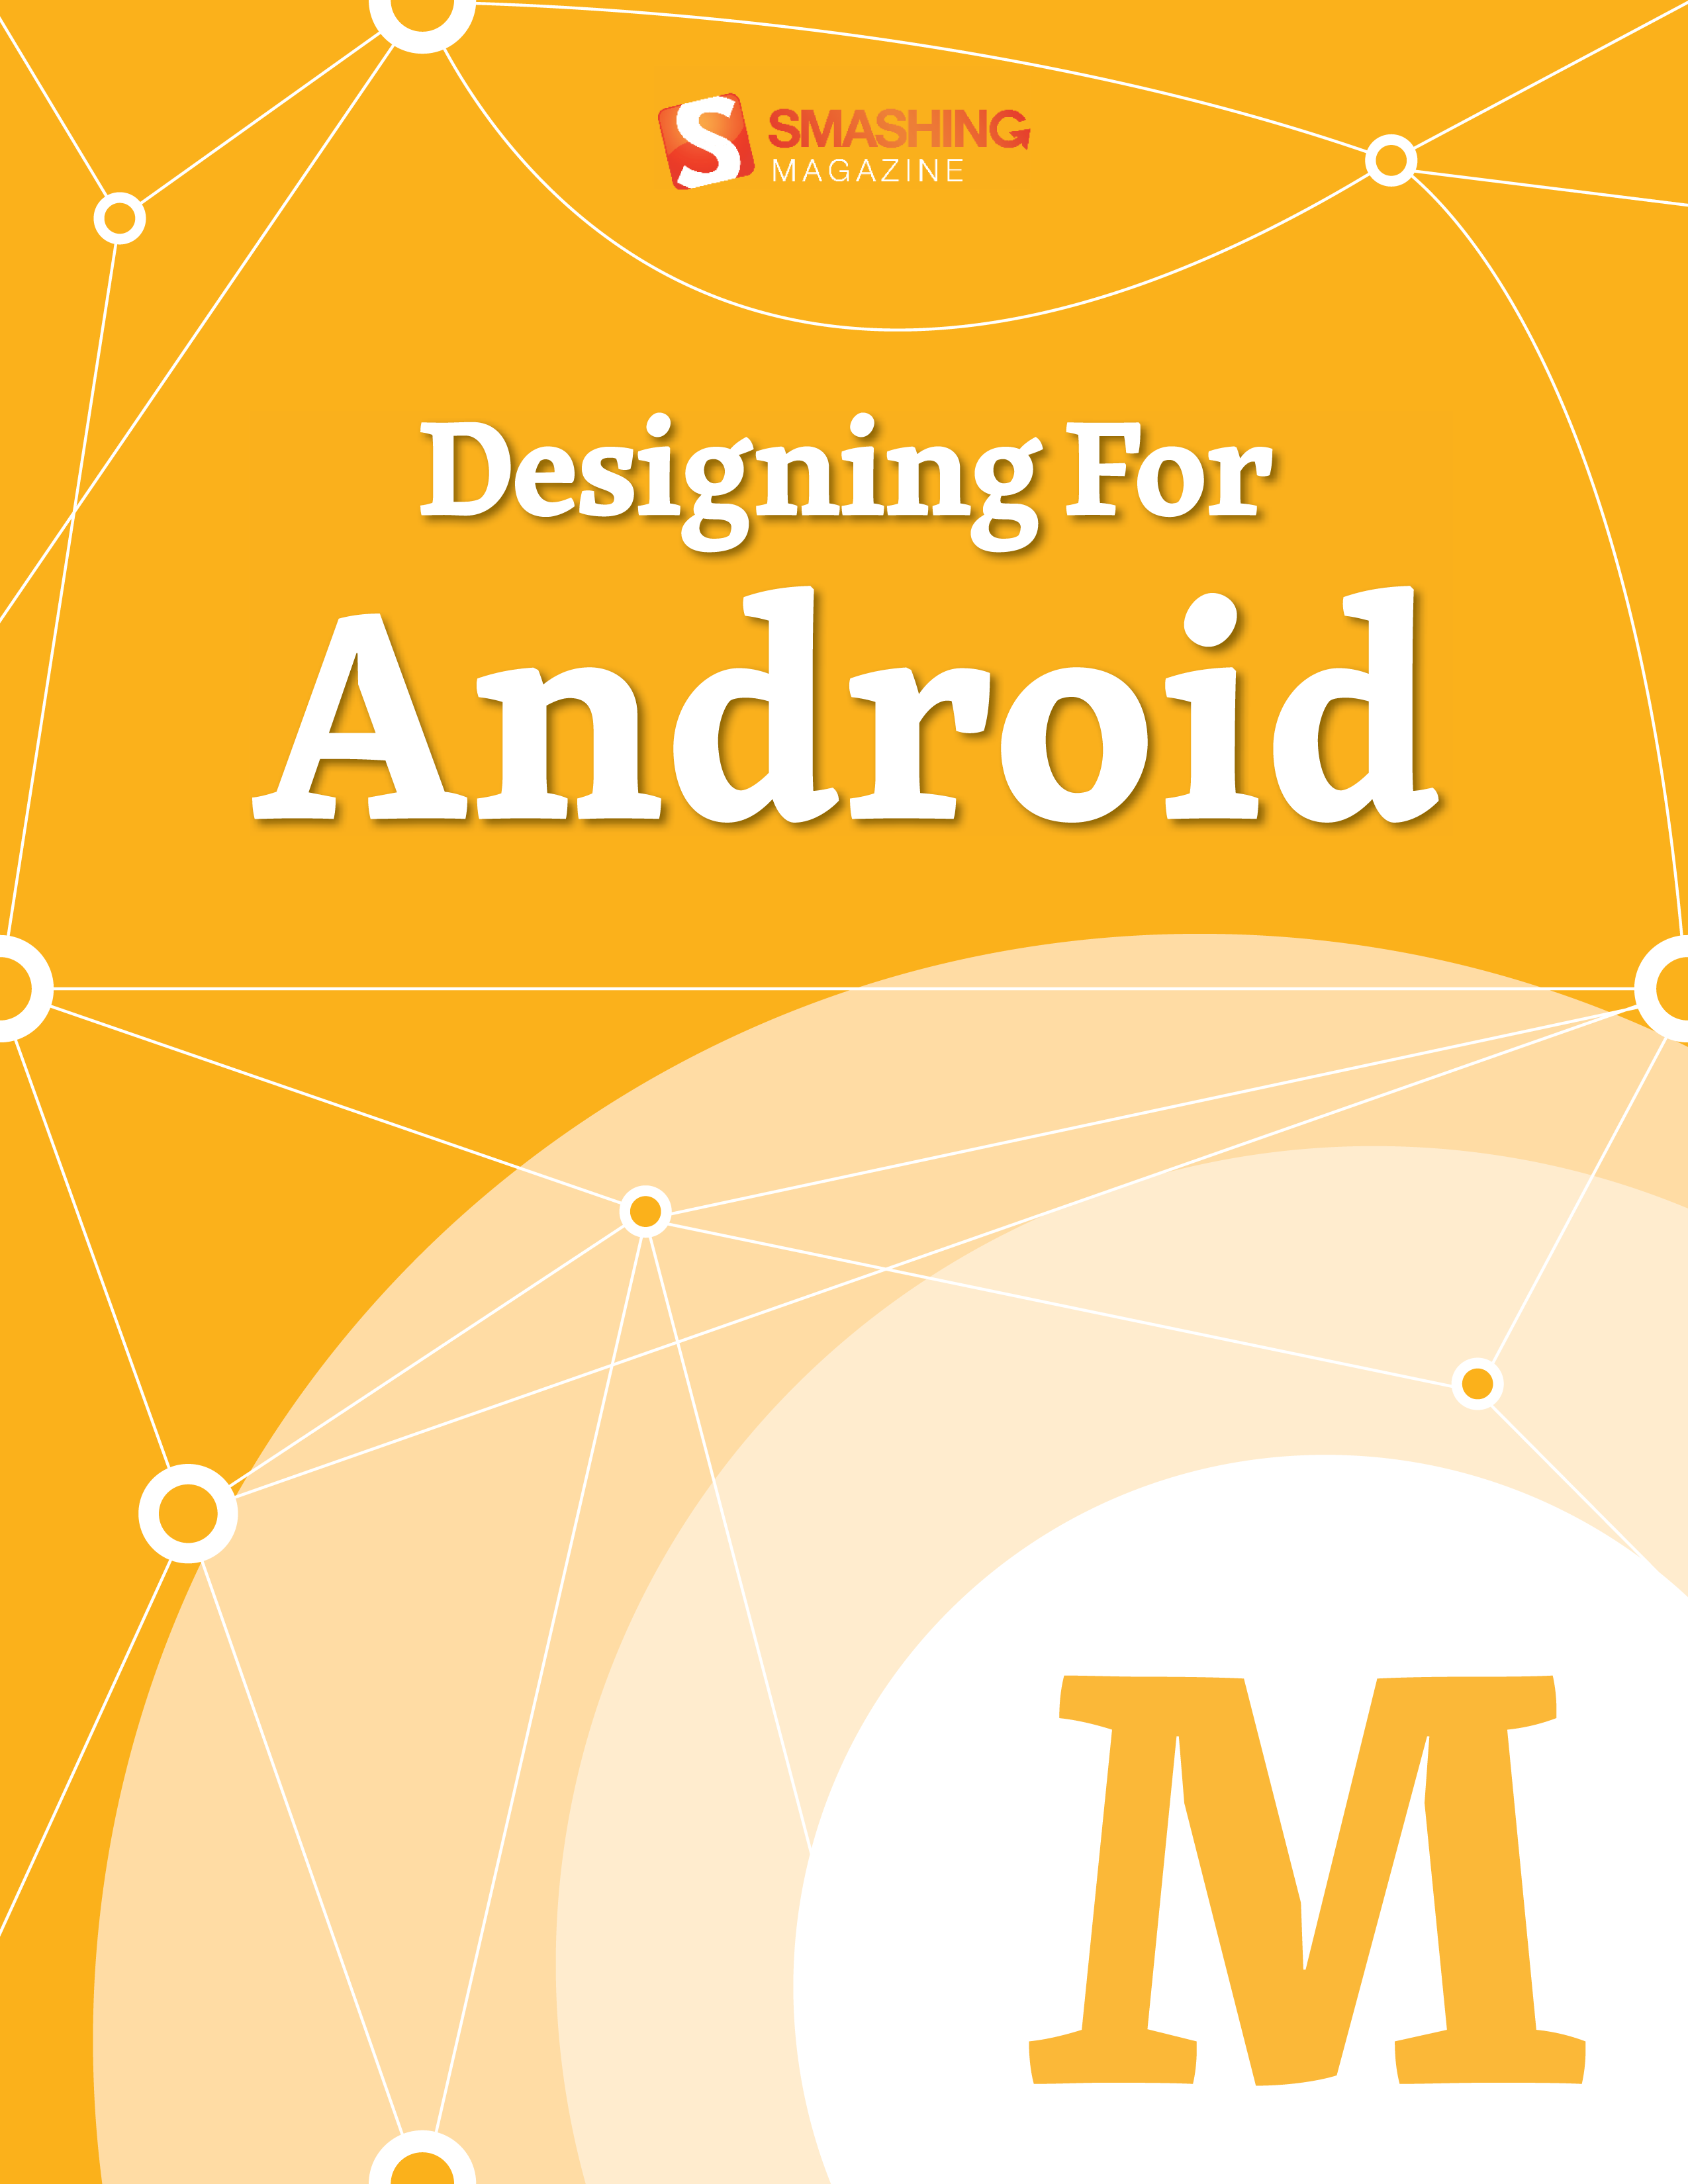 Designing For Android By: Smashing Magazine